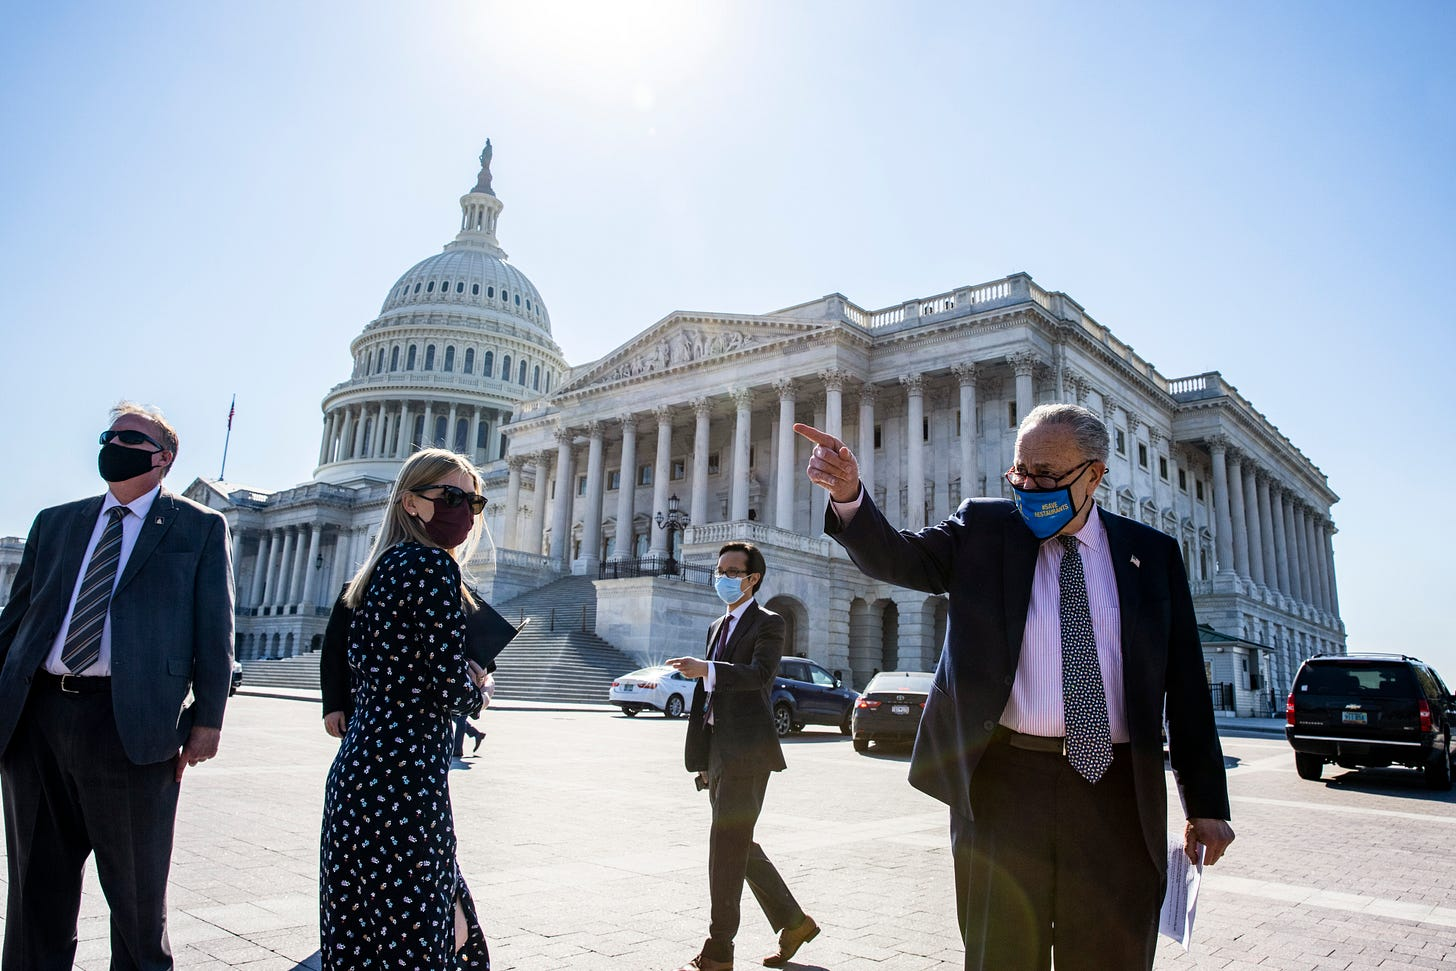 U.S. Senate Majority Leader Sen. Chuck Schumer (D-NY) walks to start a press conference at the US Capitol on March 10, 2021 in Washington, DC.